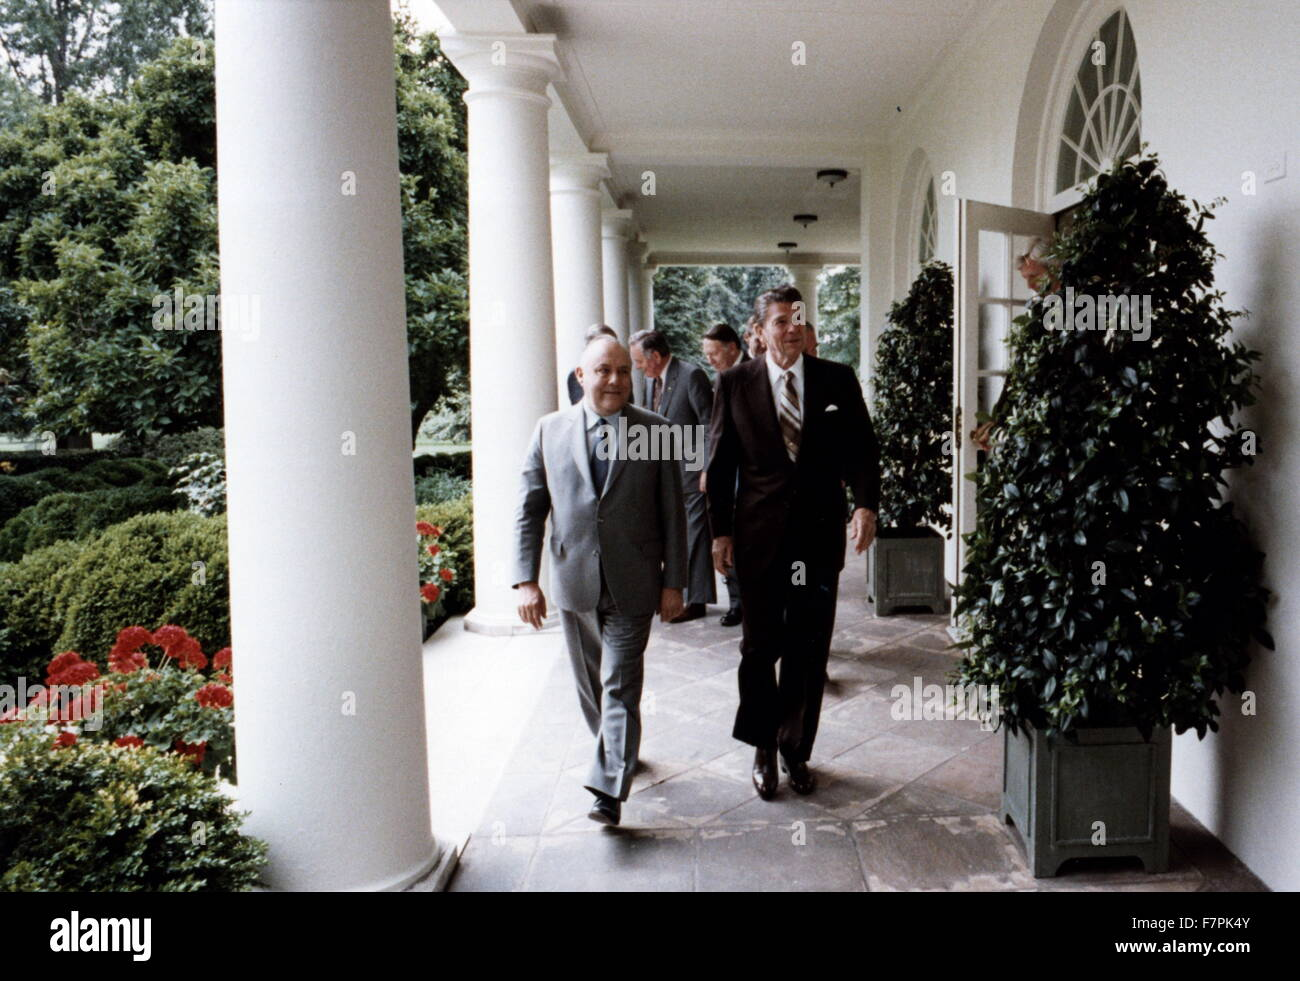 Colour photograph of President Ronald Reagan (1911-2004) walking outside of the White House. Dated 1981 - Stock Image